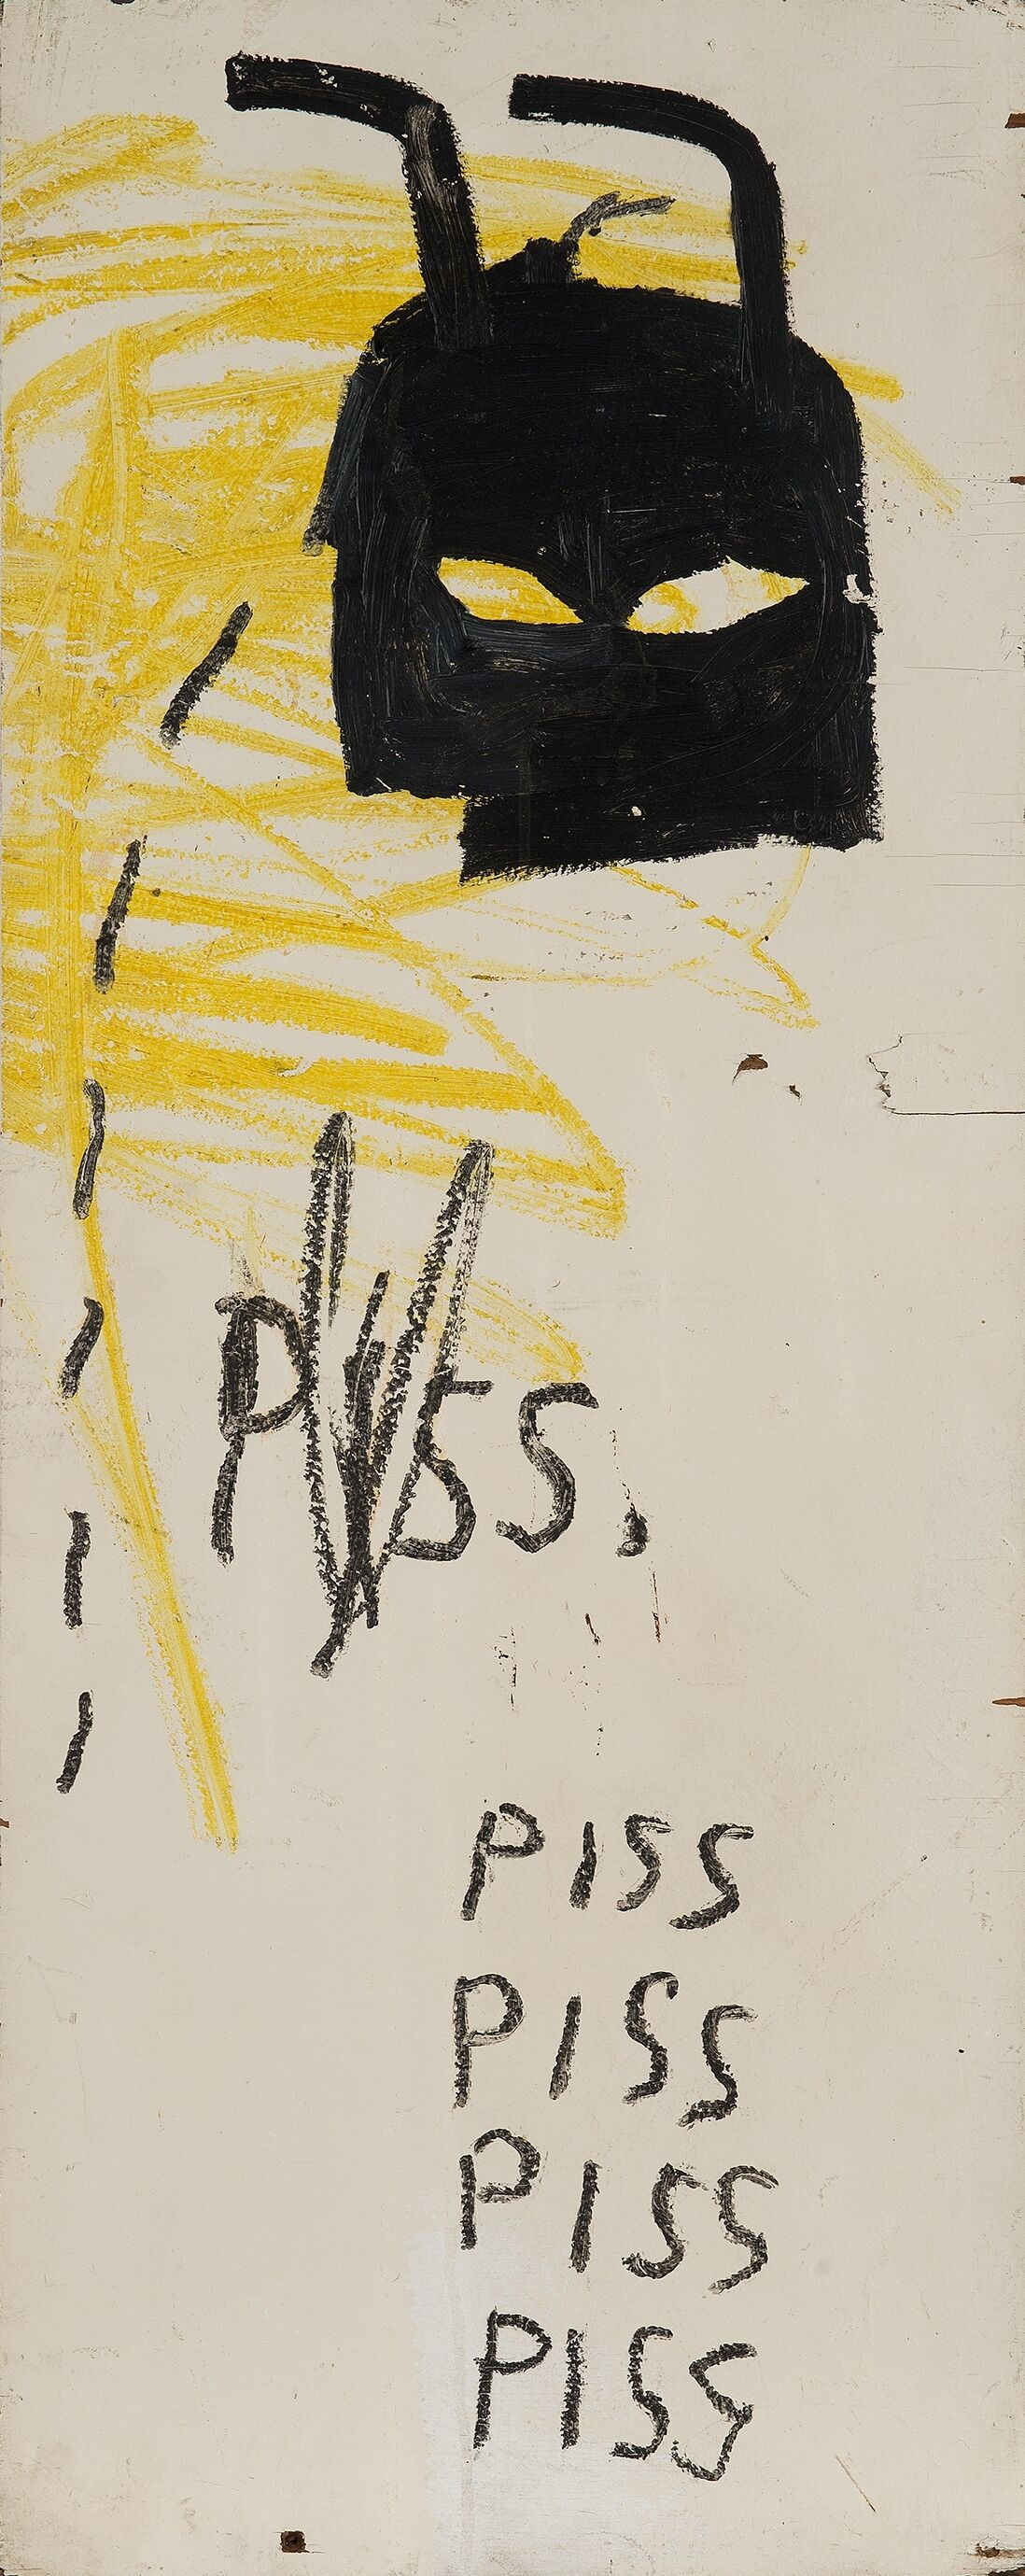 Jean-Michel Basquiat, Untitled (Piss Piss Piss Piss), 1982–1983. Courtesy of Phillips.